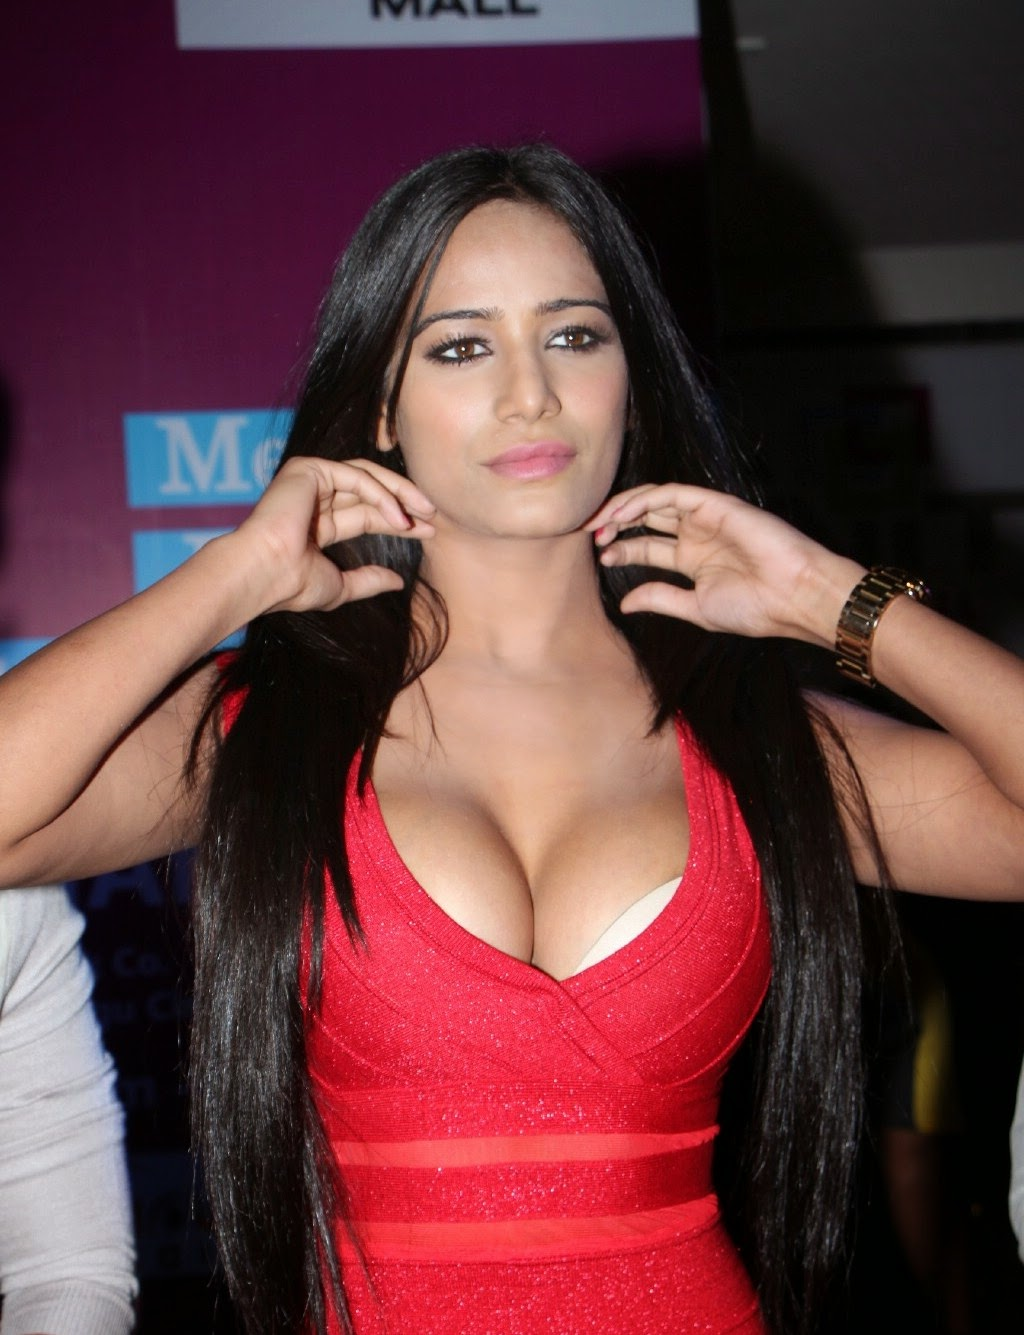 Poonam Pandey naked (91 pics) Fappening, Facebook, butt